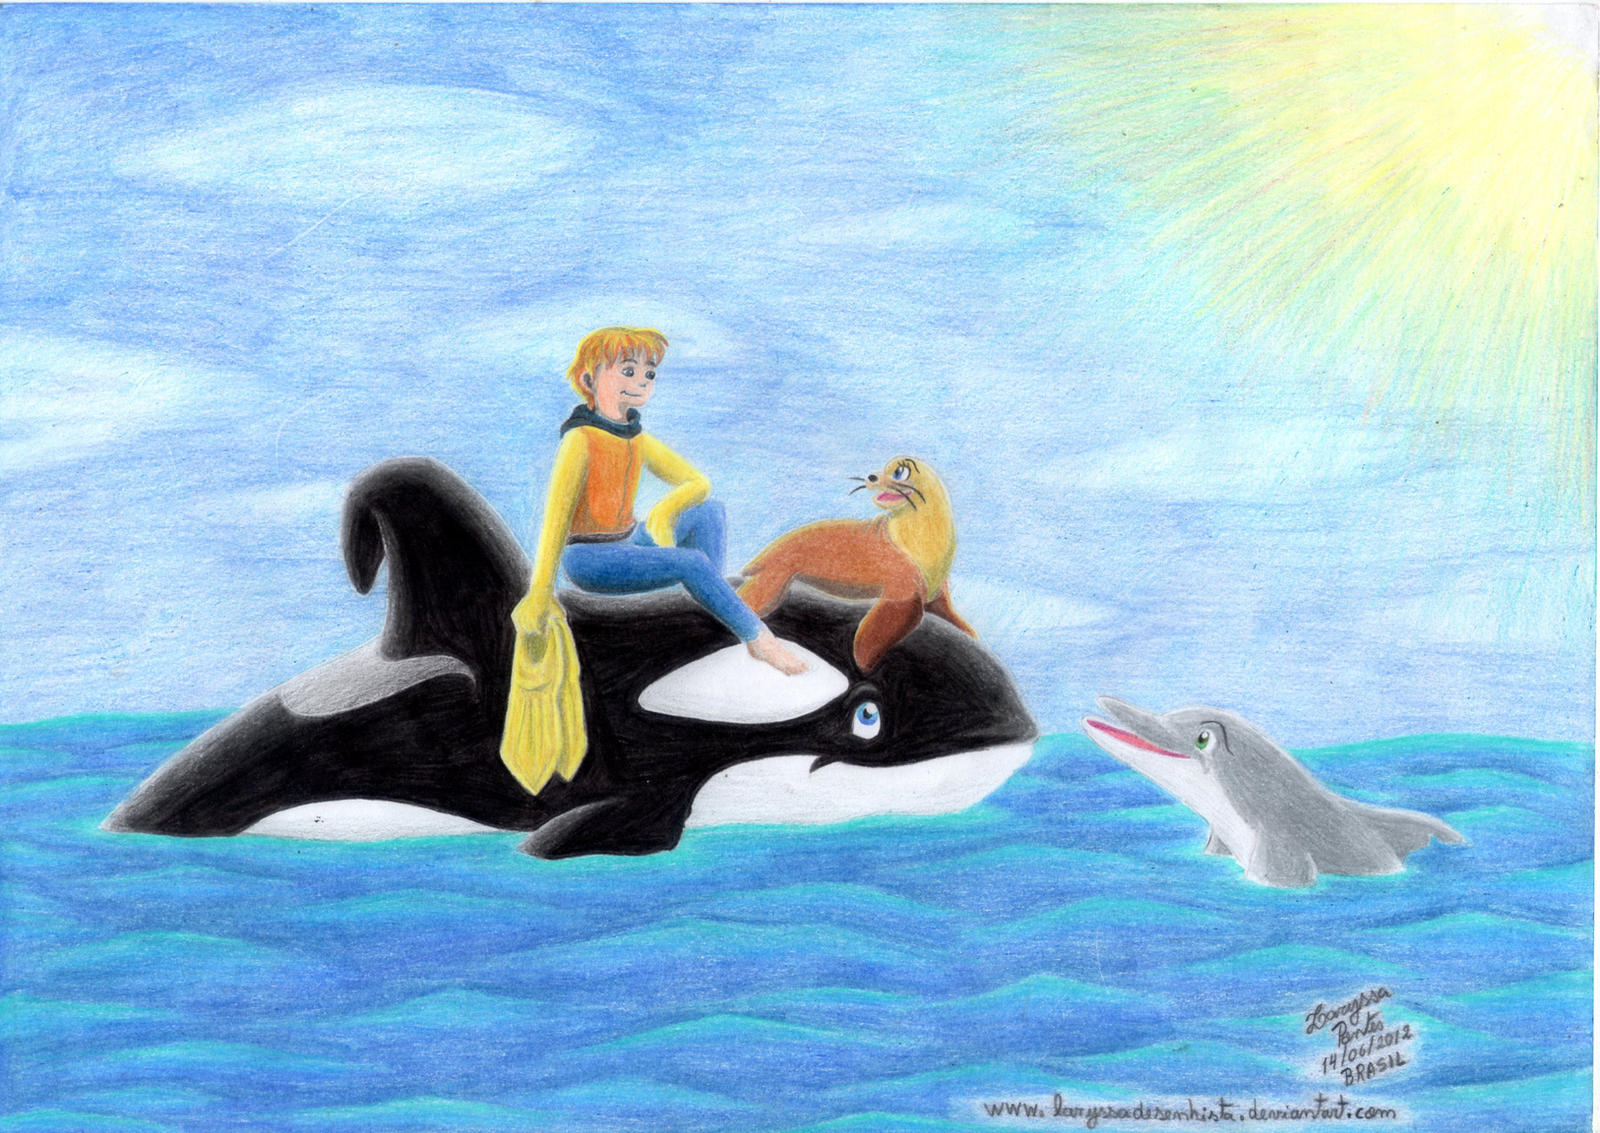 free willy cartoon series fanart on freewillyfans